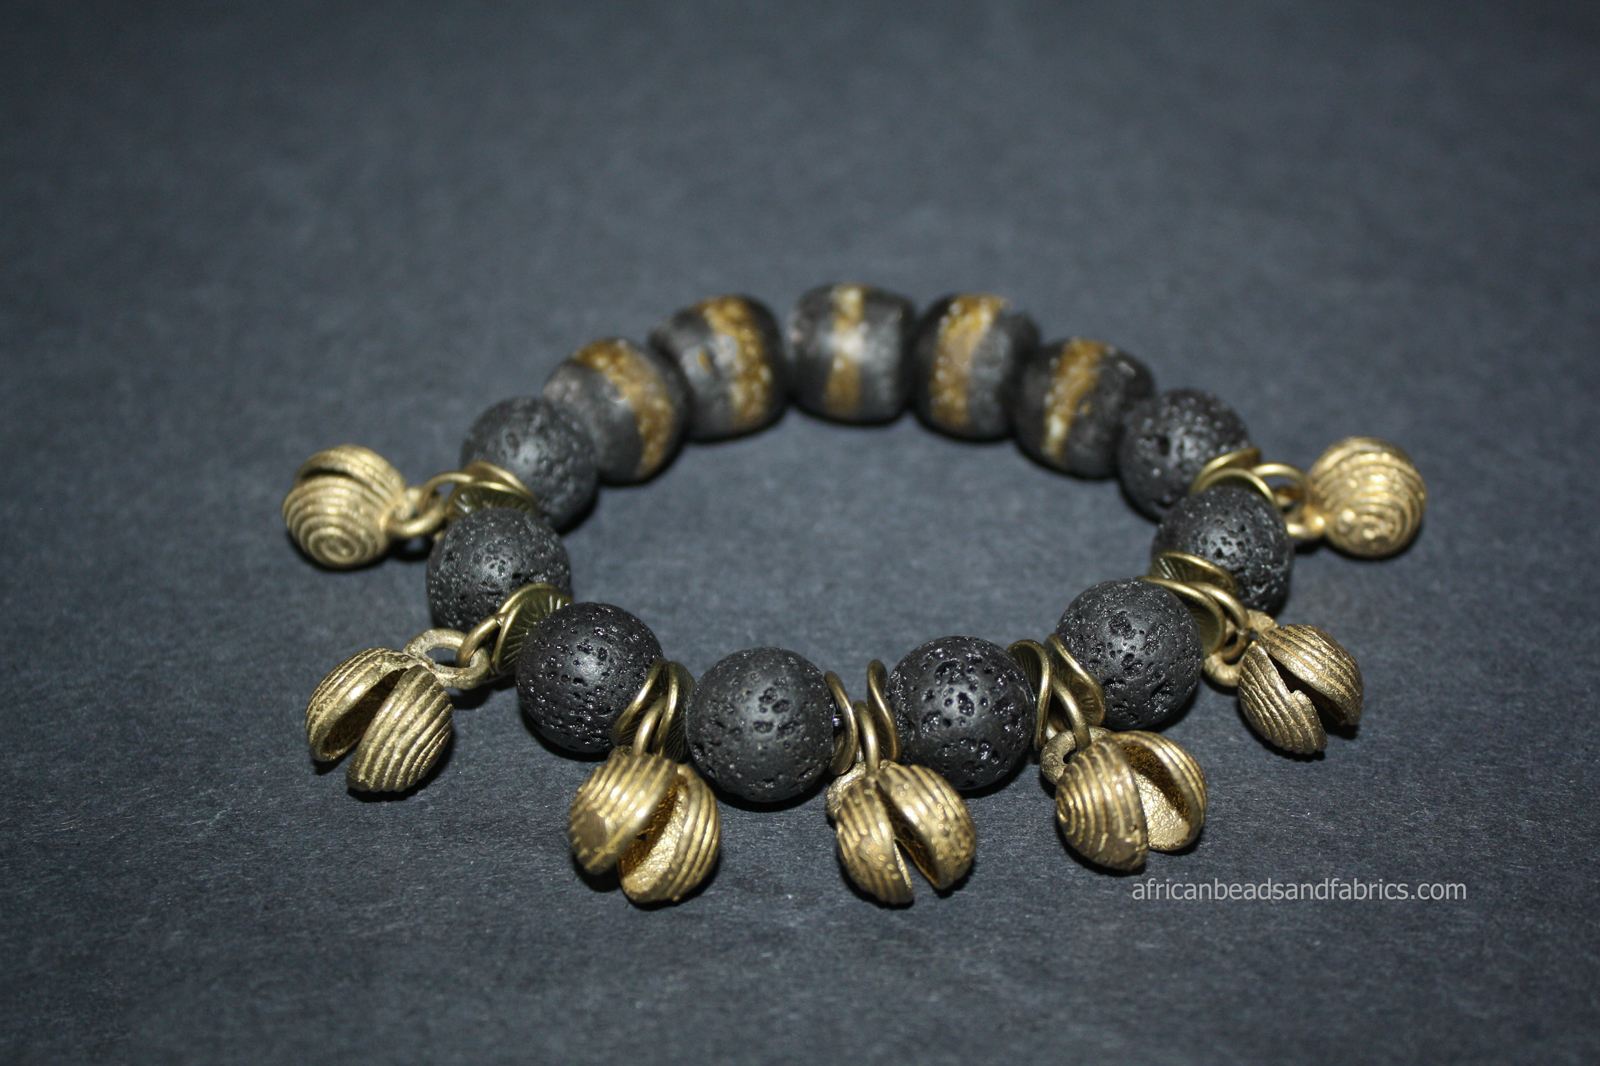 Lava-Bracelet-12mm-with-brass-beads-and-recycled-glass-beads-and-fun-bells-watermarked